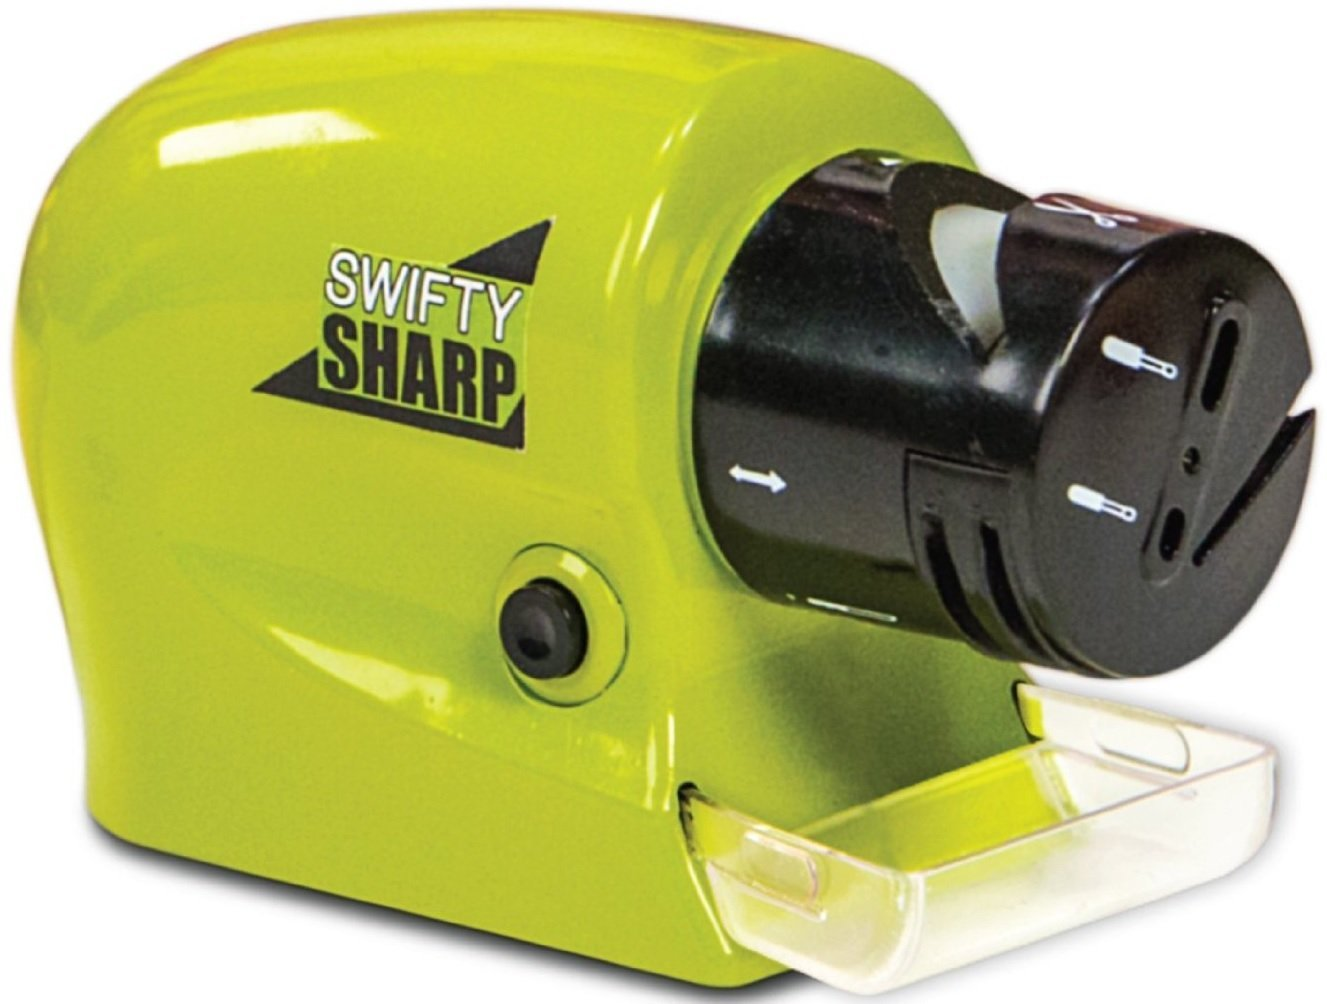 Top 10 Best Electric Knife Sharpeners 2018-2020 cover image